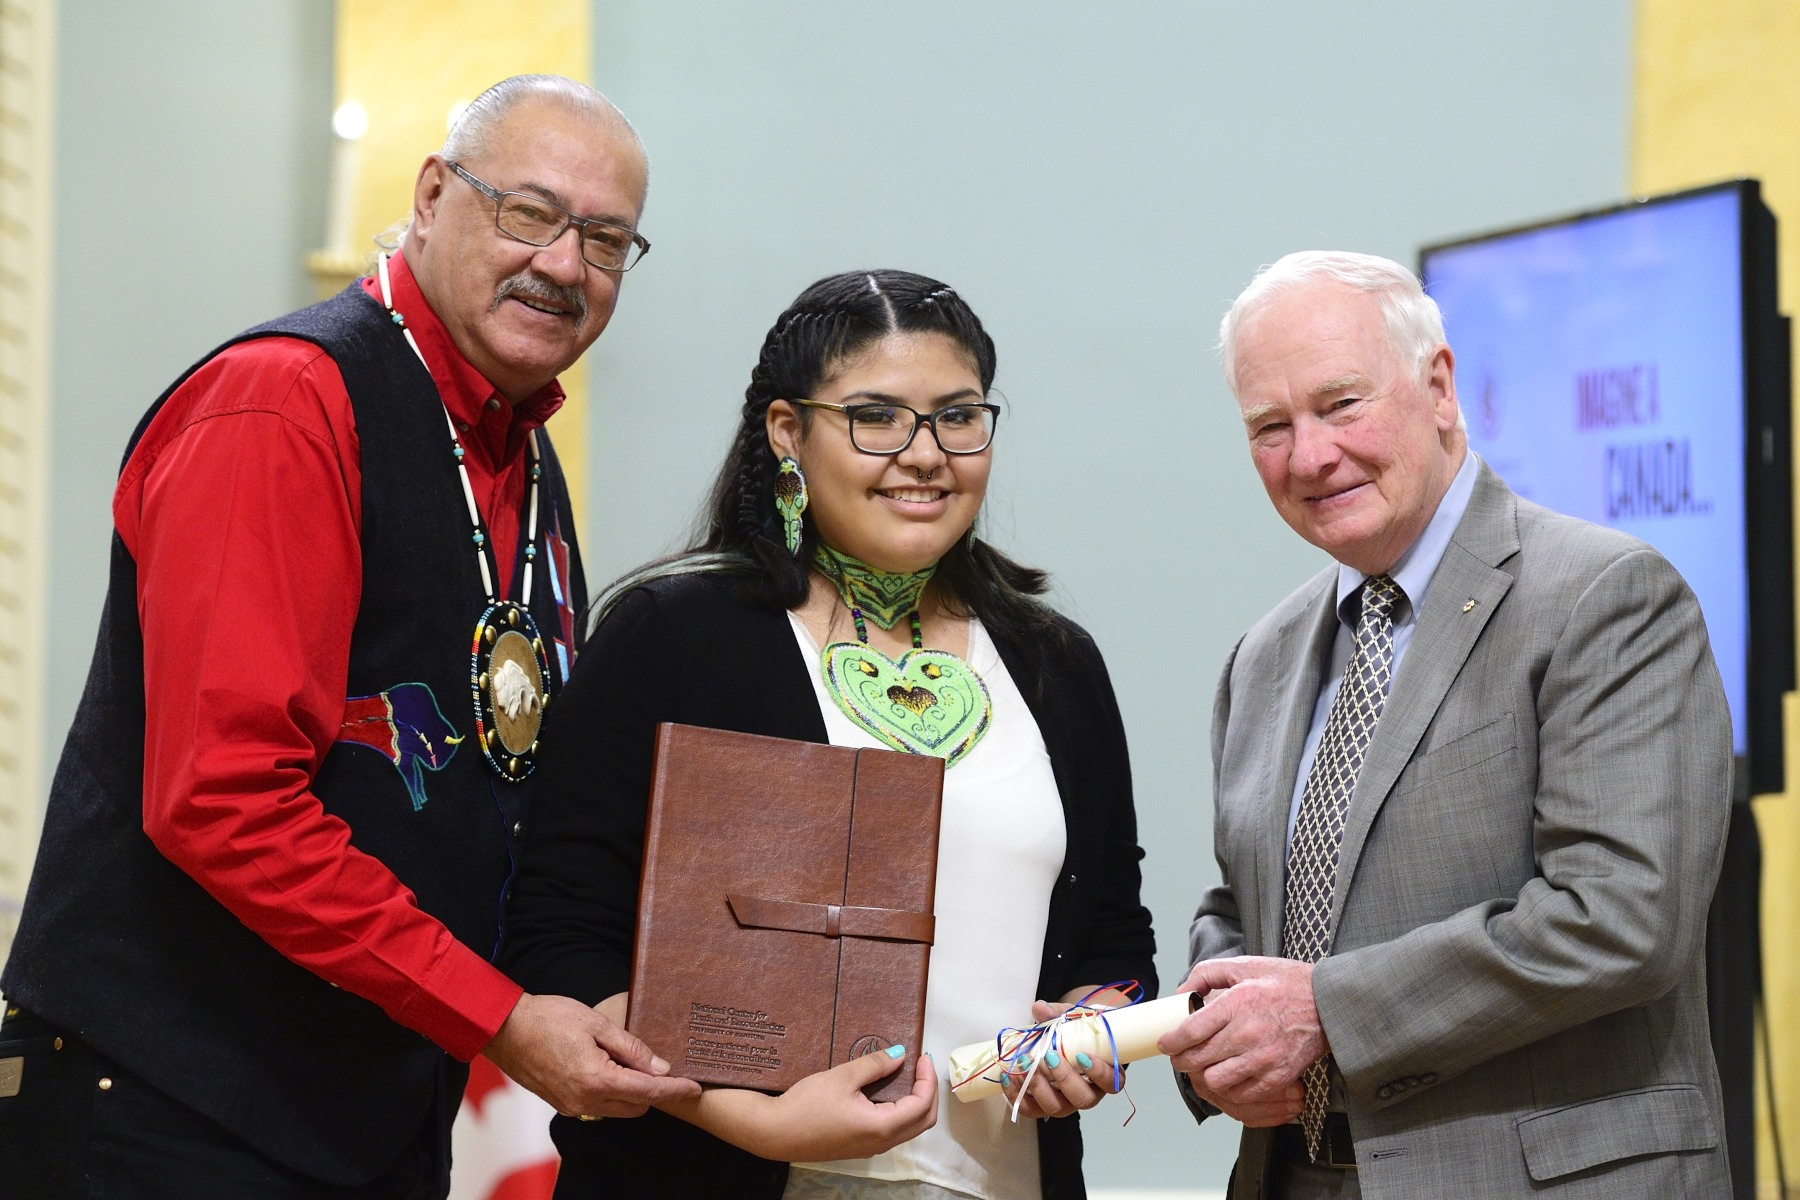 Inspired by her grandmother and the Cree and Nakota people of central Alberta, Angeline Gutierrez-Rain, a grade 12 student, received congratulations for her gripping painting.